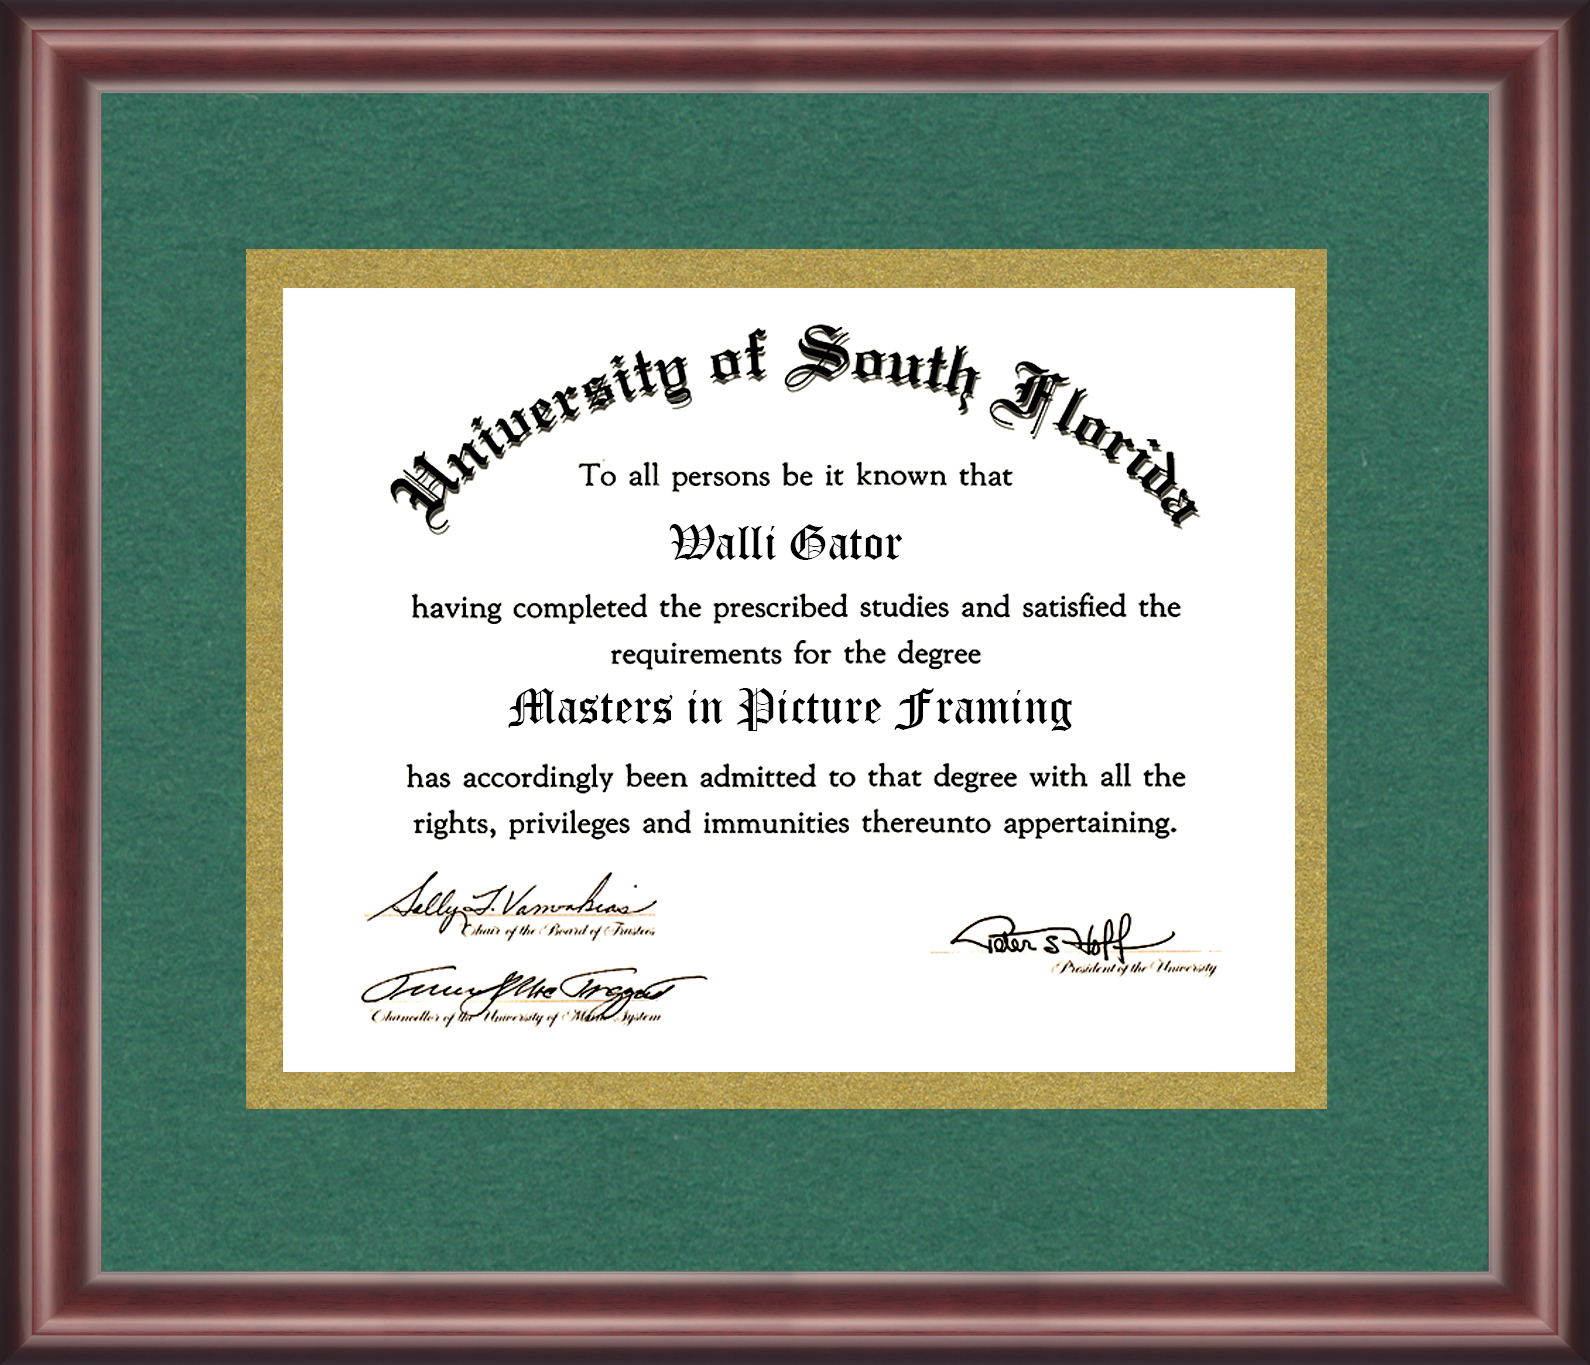 University of South Florida Diploma Frame - Talking Walls